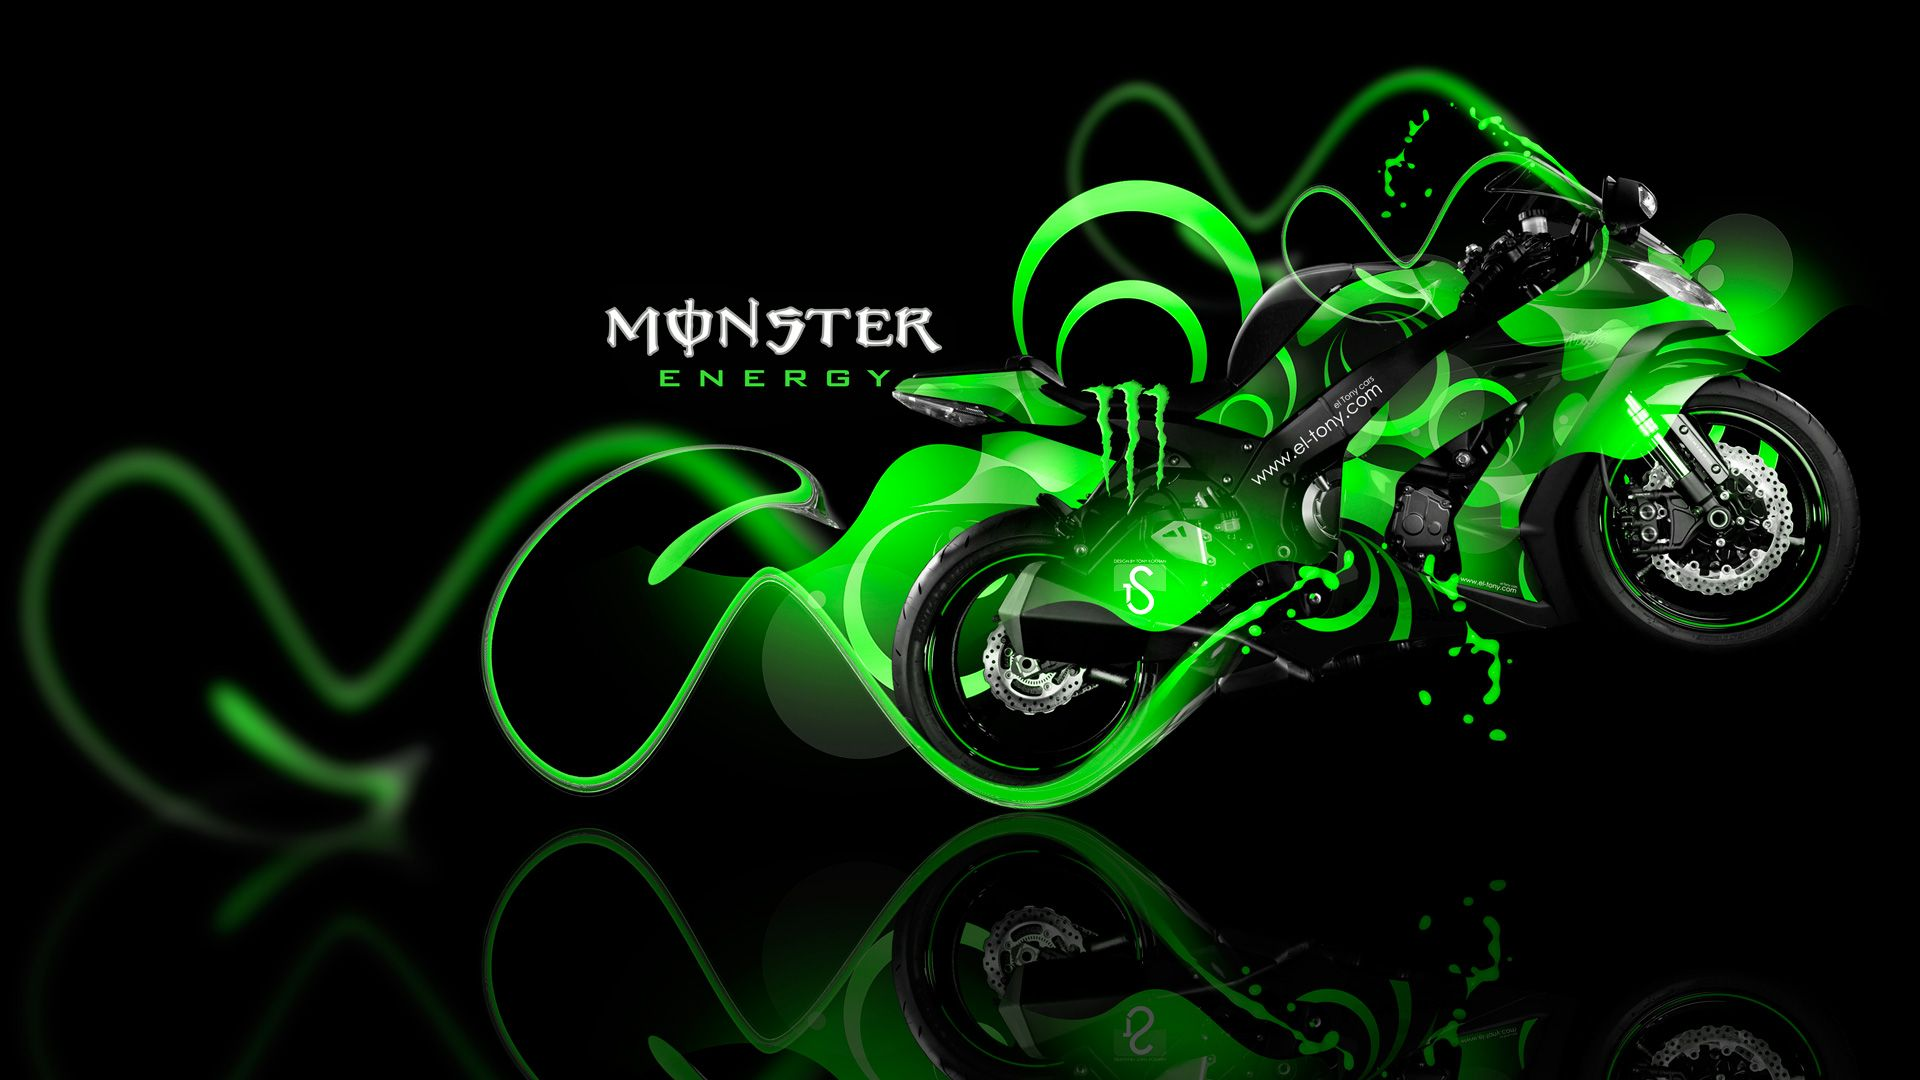 Captivating Monster Energy Kawasaki Ninja Green Plastic Bike 2014 Design By Tony Design